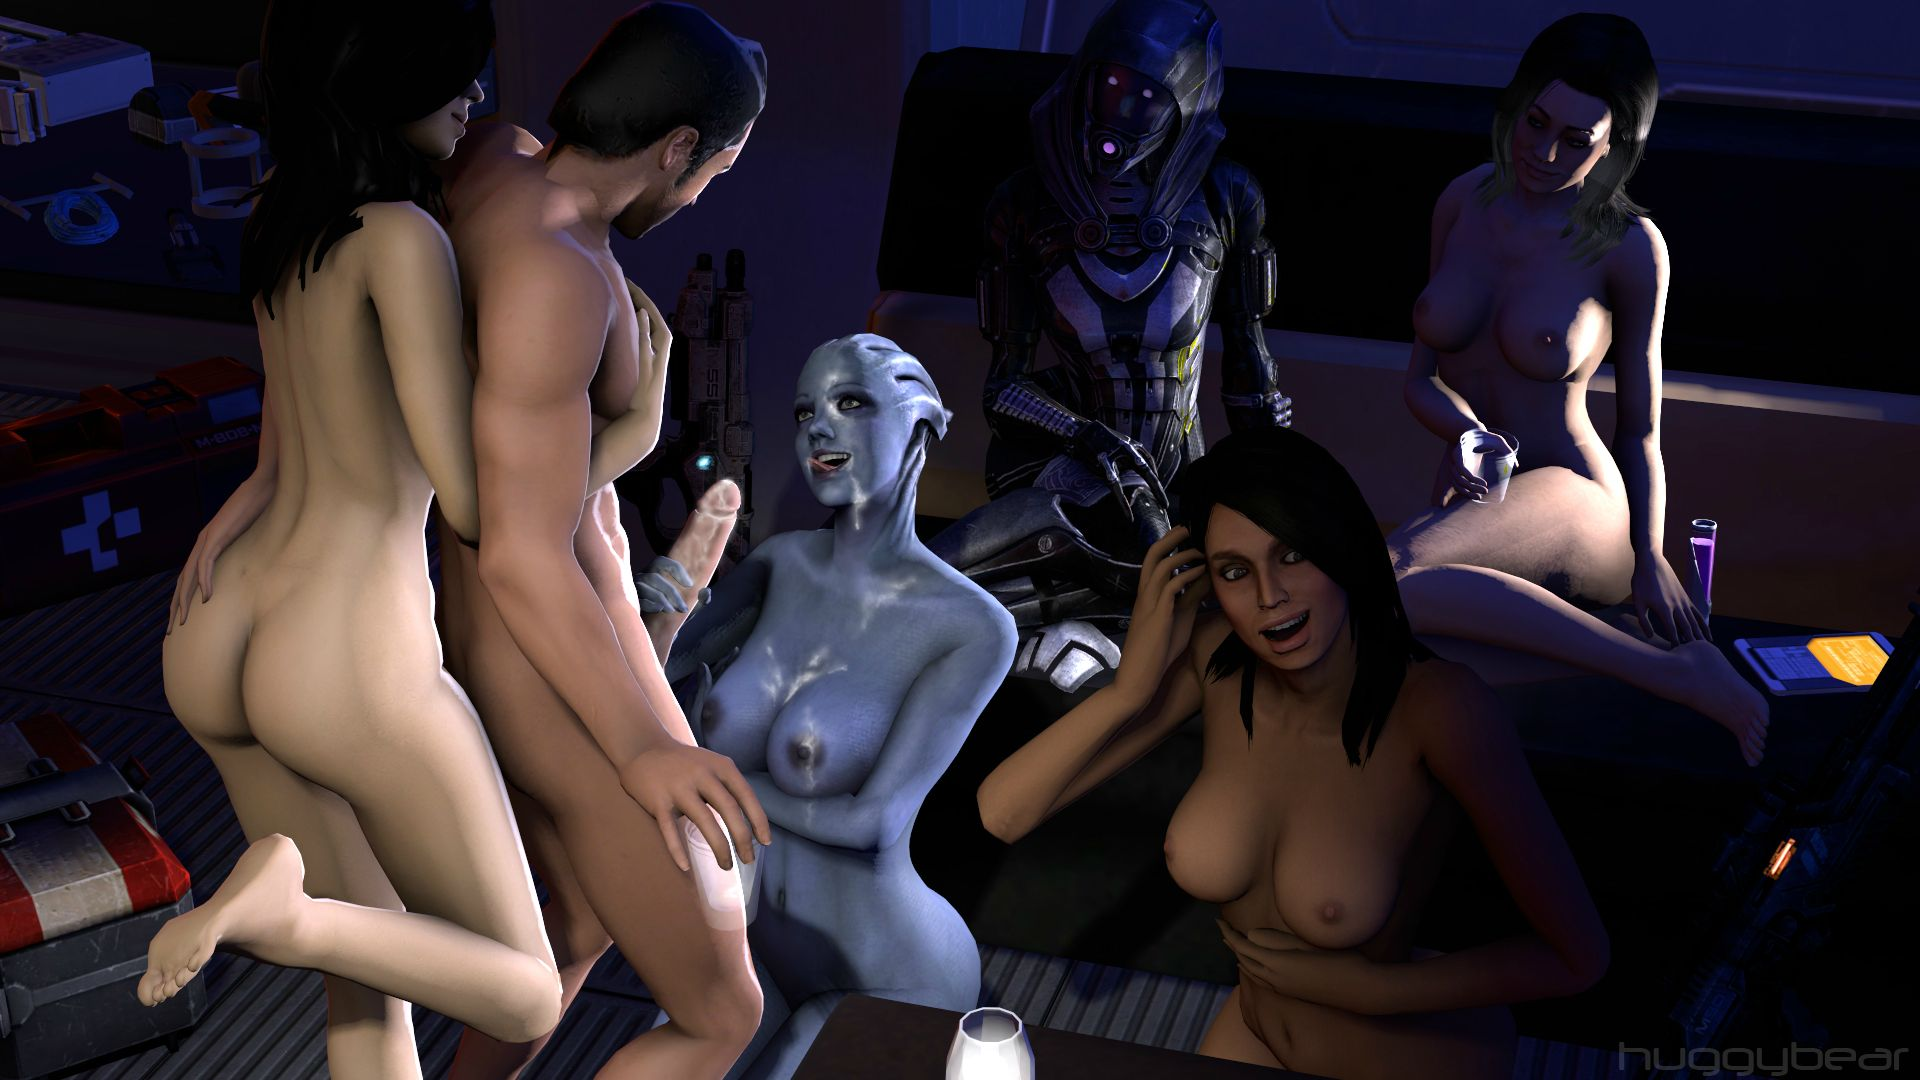 Mass effect nude 3 nude mod sex video